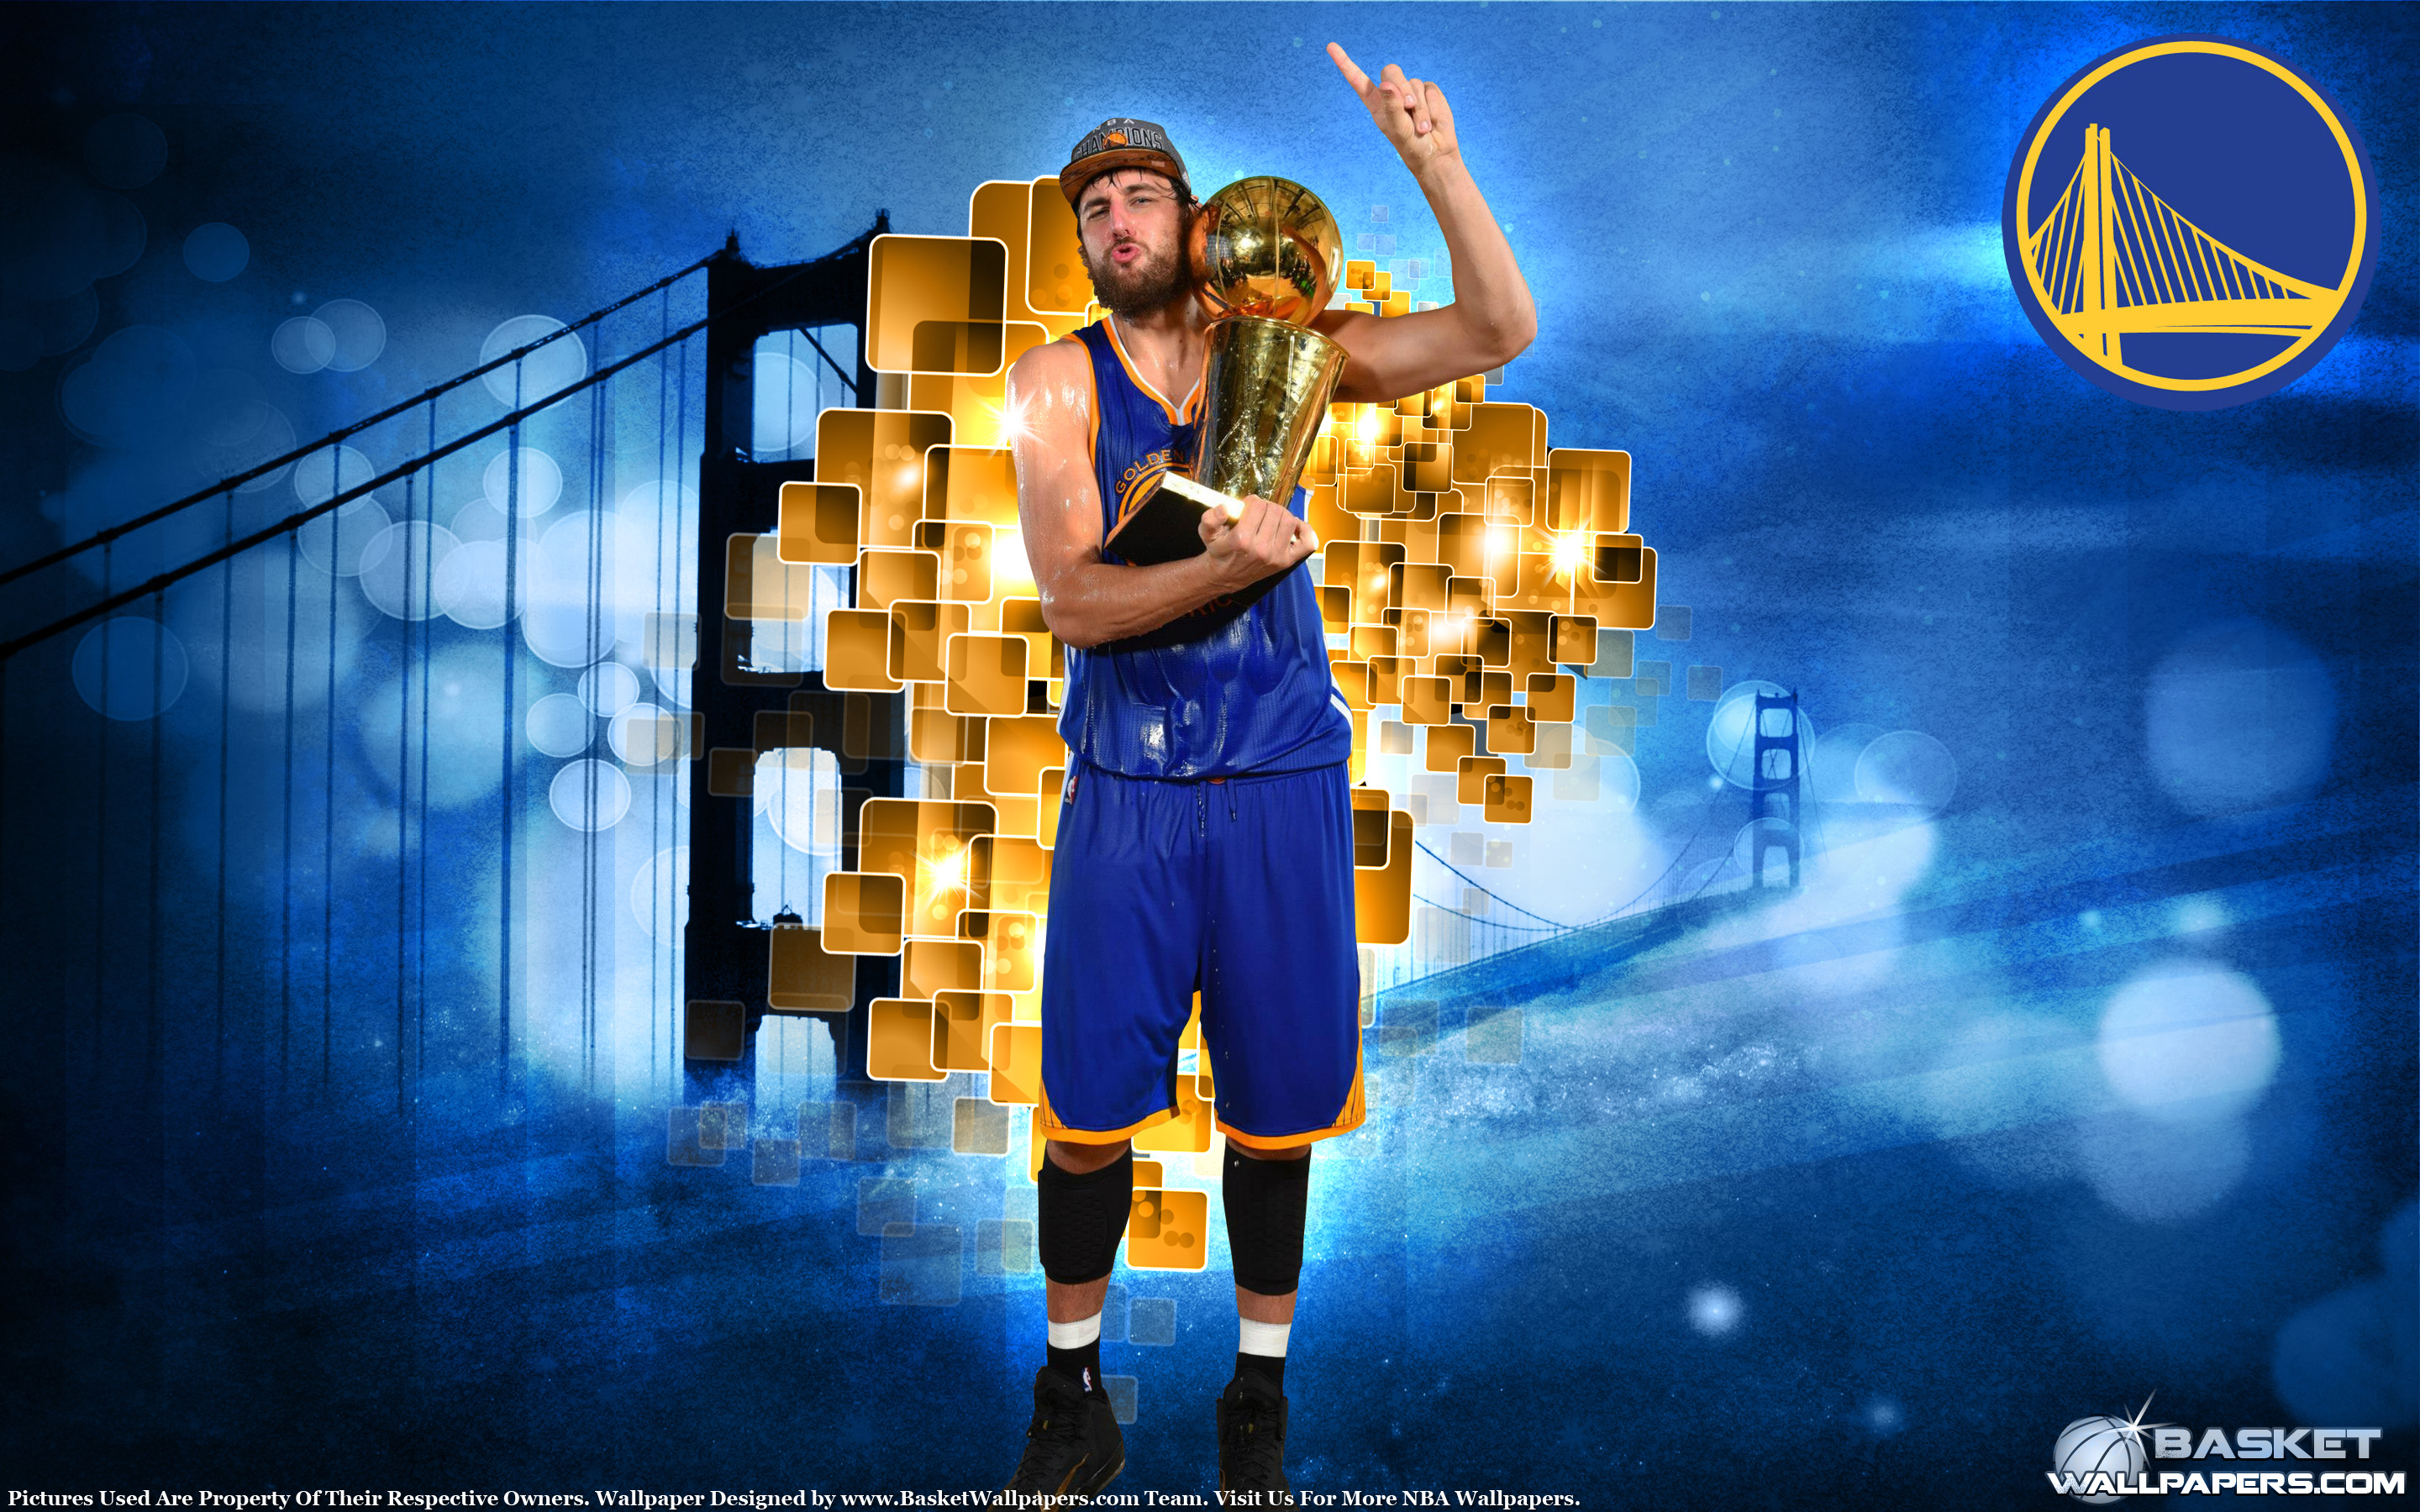 Andrew Bogut 2015 NBA Champion Wallpaper